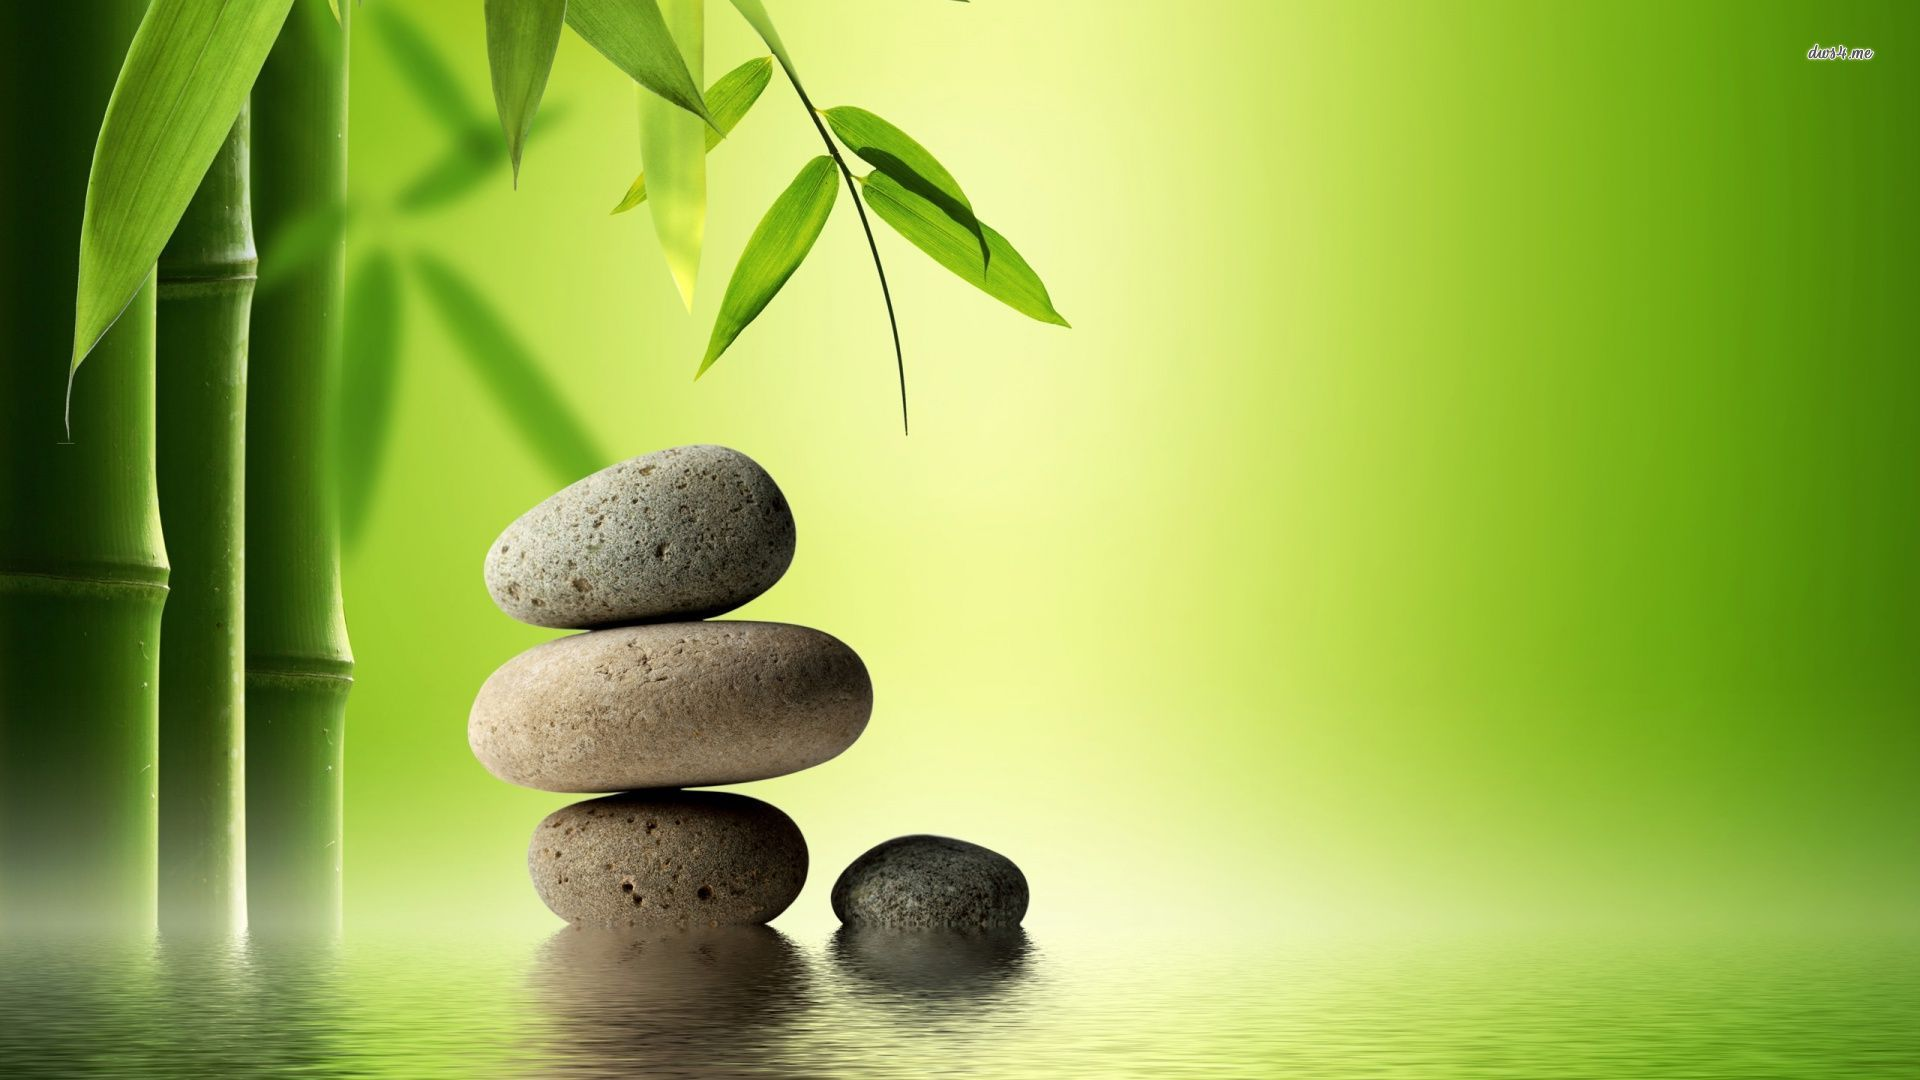 Bamboo and zen stones wallpaper Wallpaper Wide HD 1920x1080